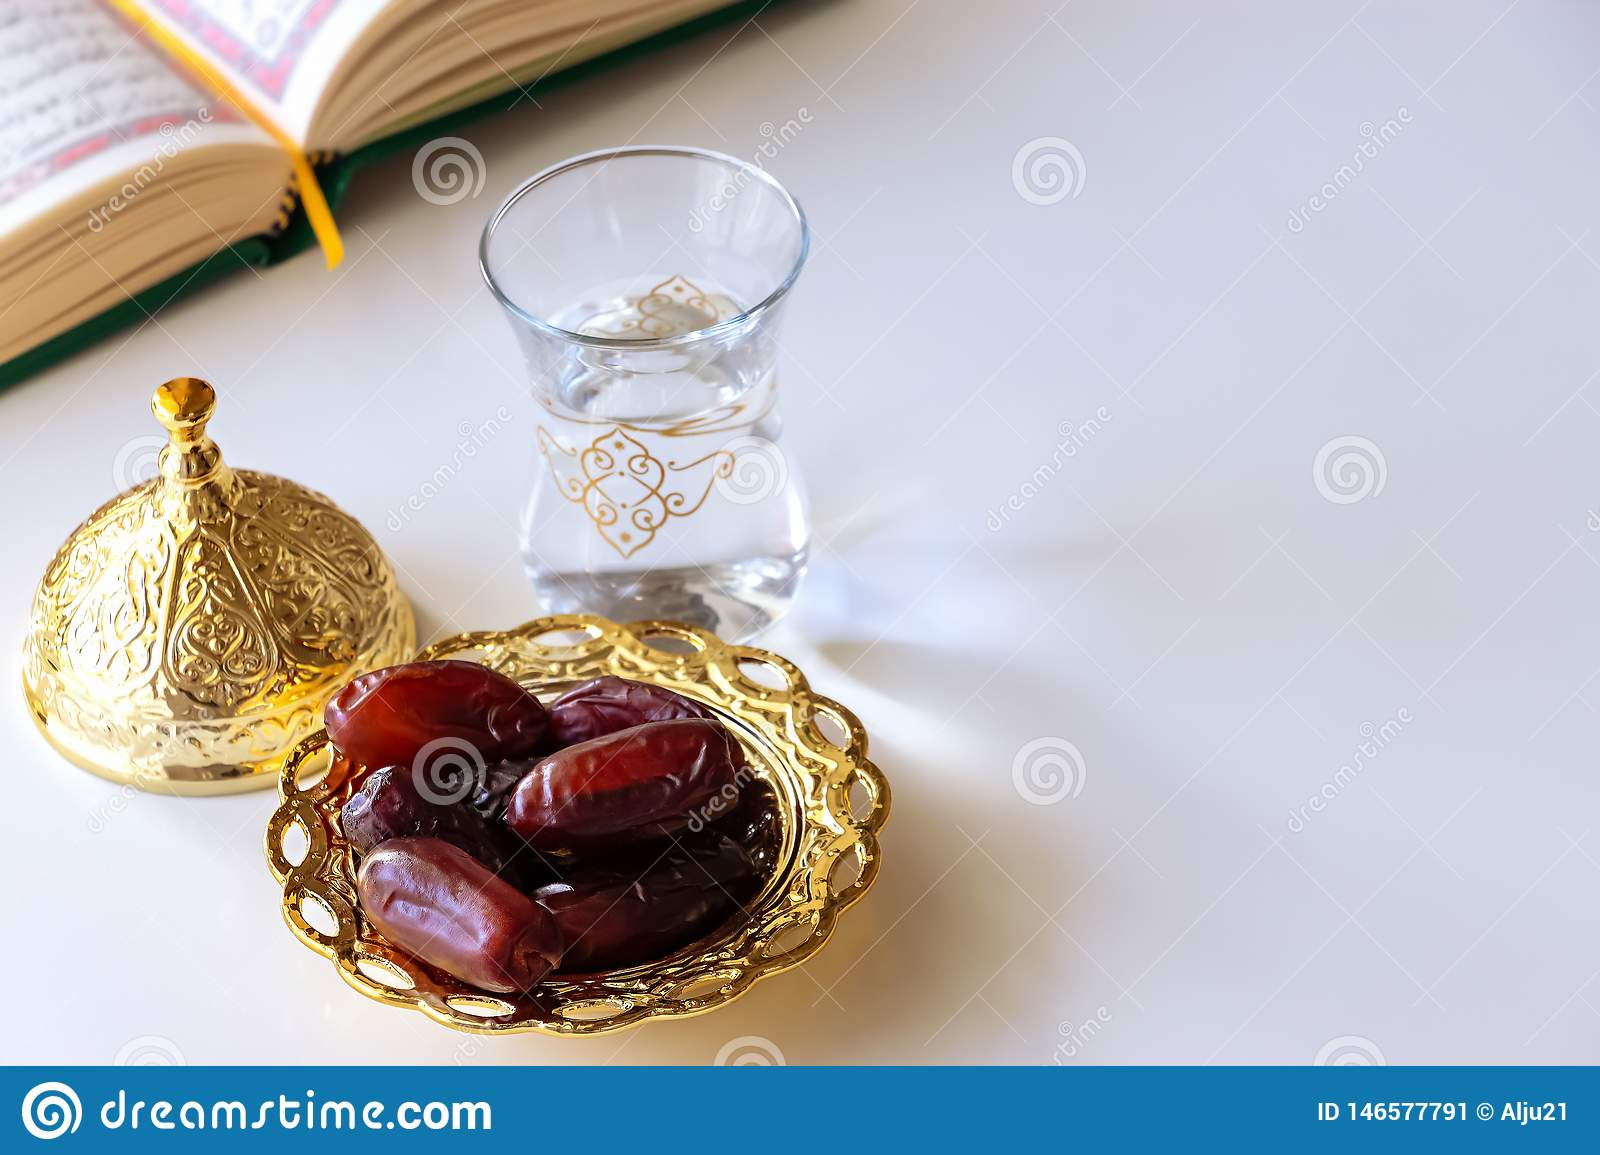 Organic Dates In Traditional Arabic Golden Plate, Cup Of Drinking